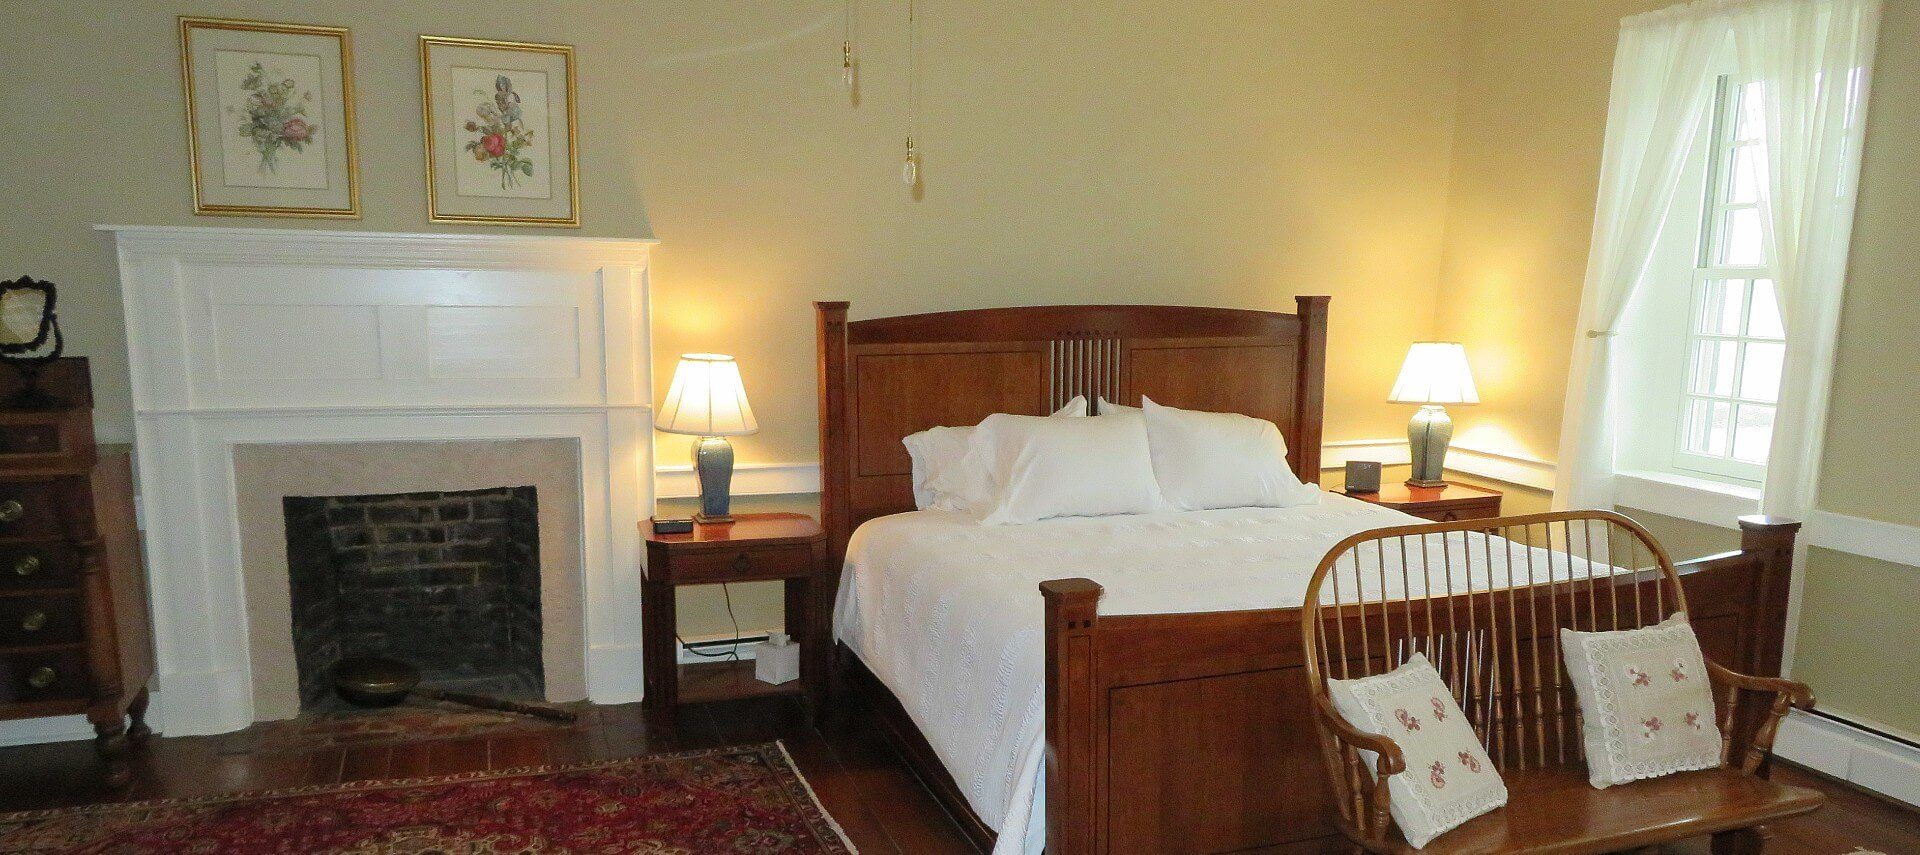 King bed with white linens in bedroom with bright windows and large fireplace with white mantle